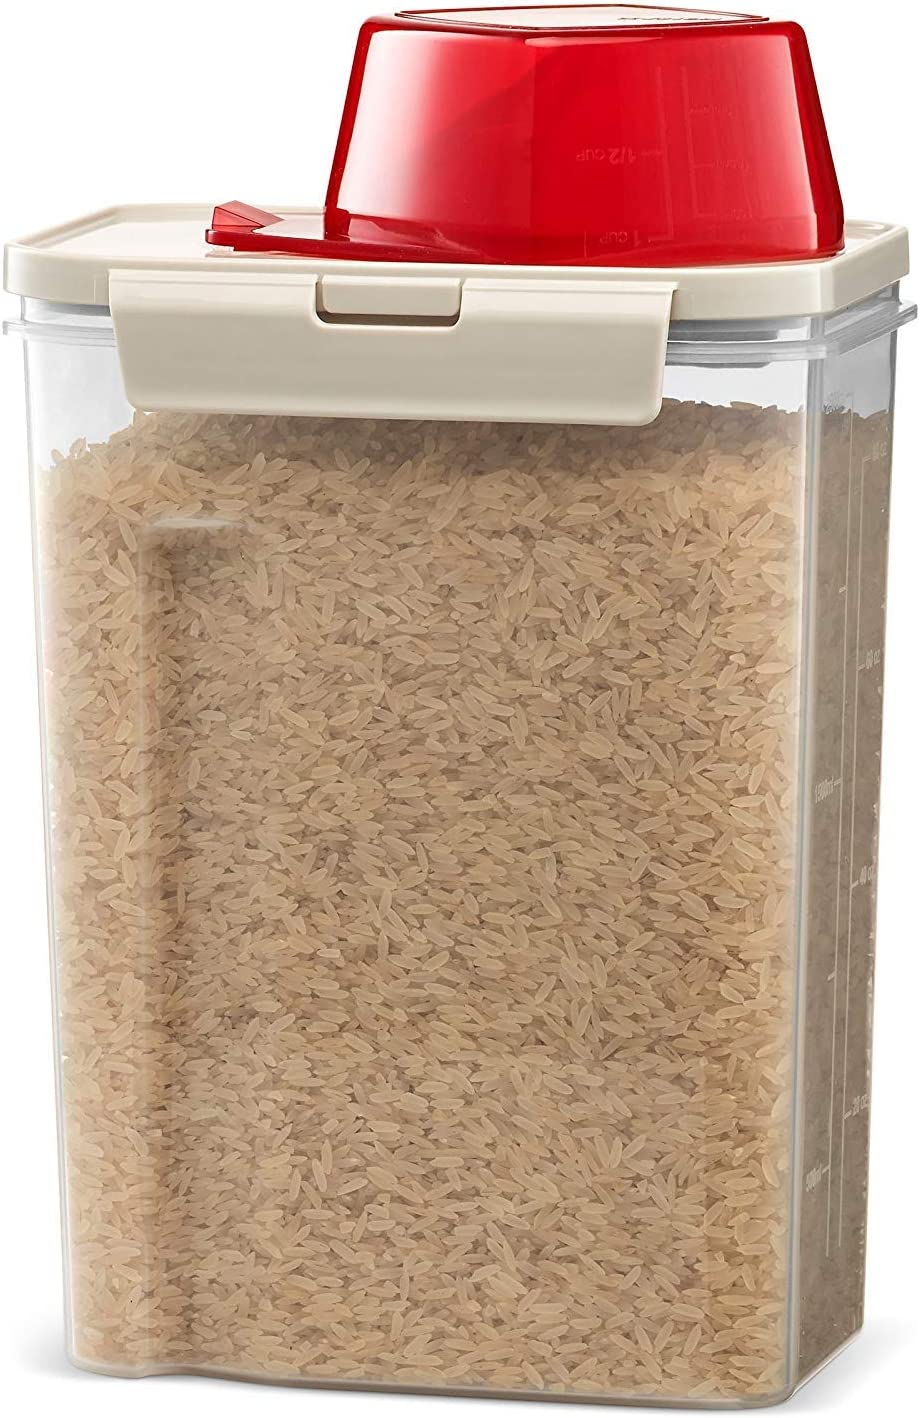 Komax Fresh Grain Set of 1 Rice Containers | 2-Quart Dry Food Storage Dispenser | Suitable for Rice, Pet Food & Grain Storage | With Lid & Measuring Scoop (1-cup) | BPA-Free & Dishwasher Safe